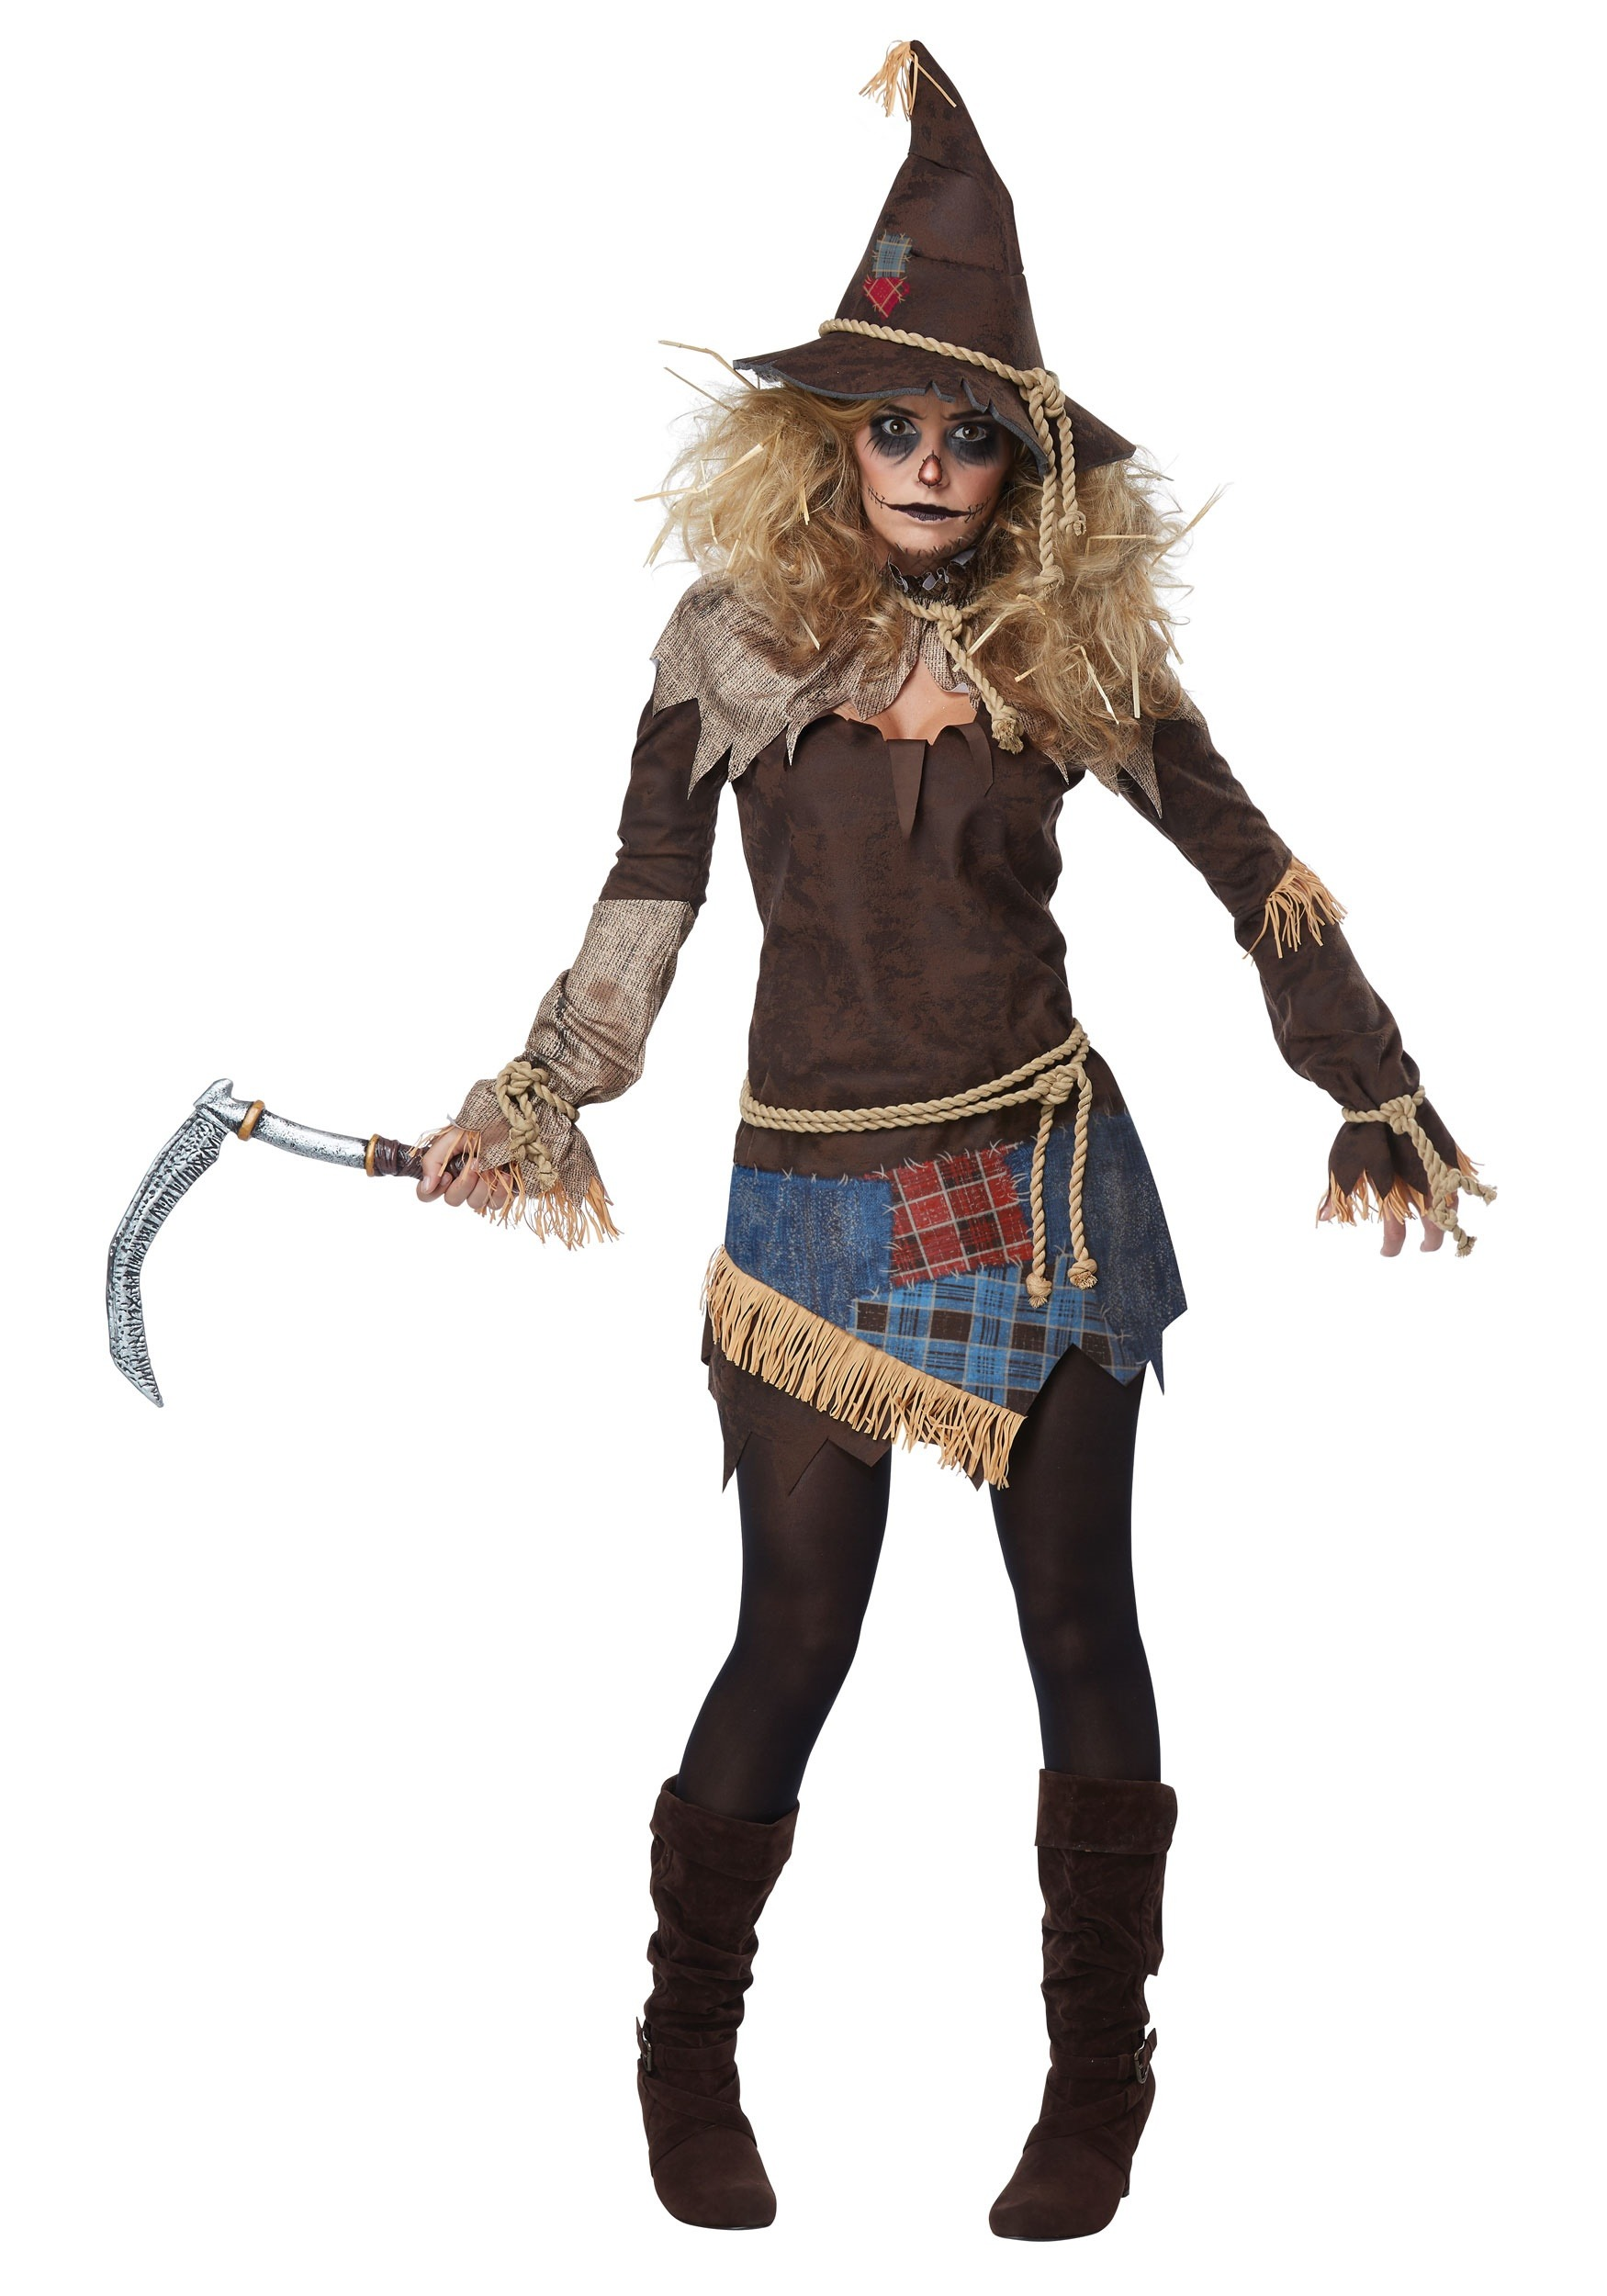 Halloween Group Costumes Scary.Scary Adult Costumes Adult Scary Halloween Costume Ideas